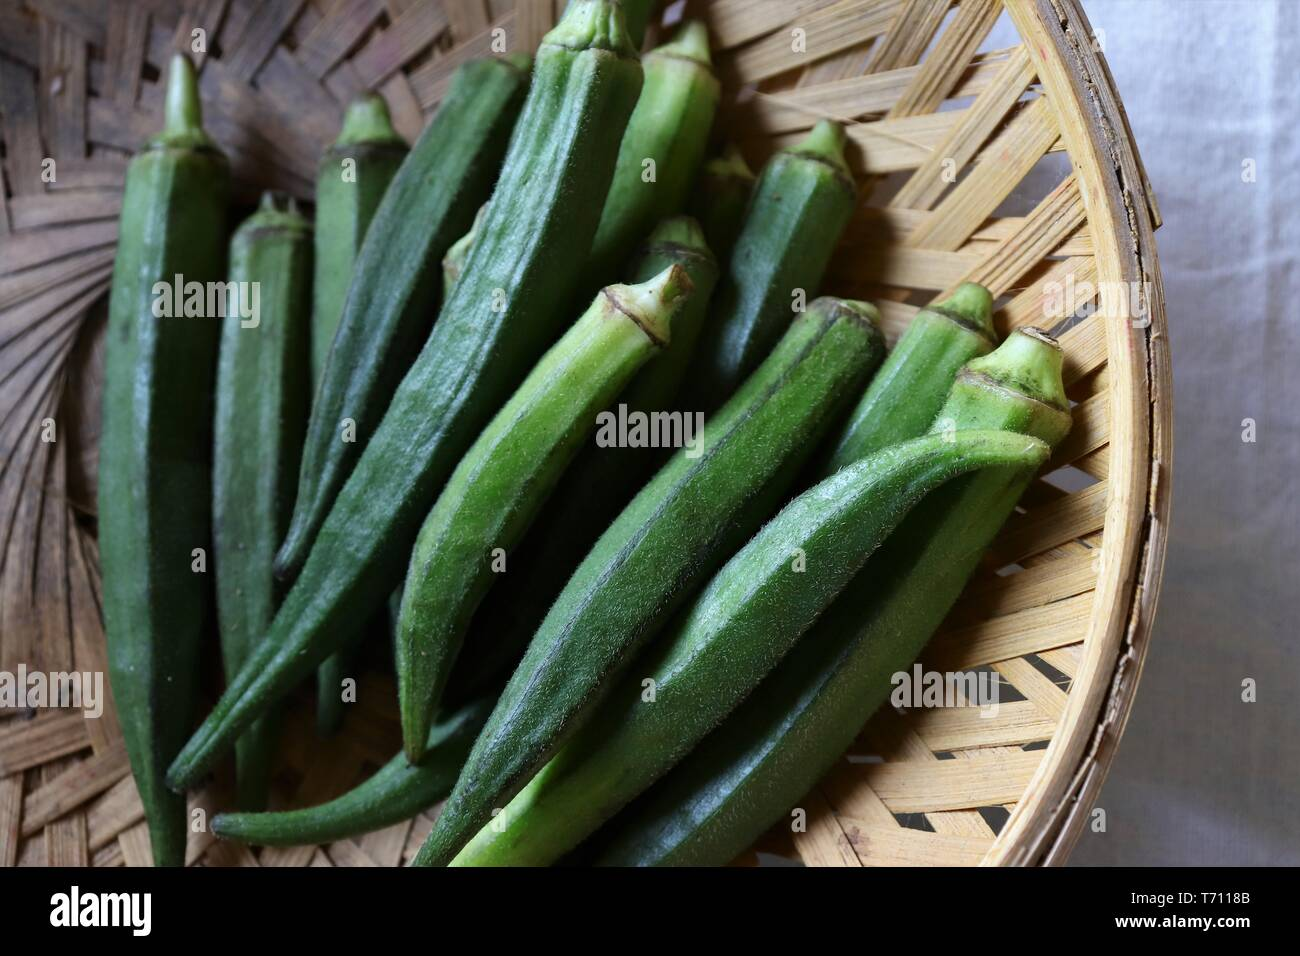 Close-up of Okra/ ladies' finger in a bamboo basket - Stock Image